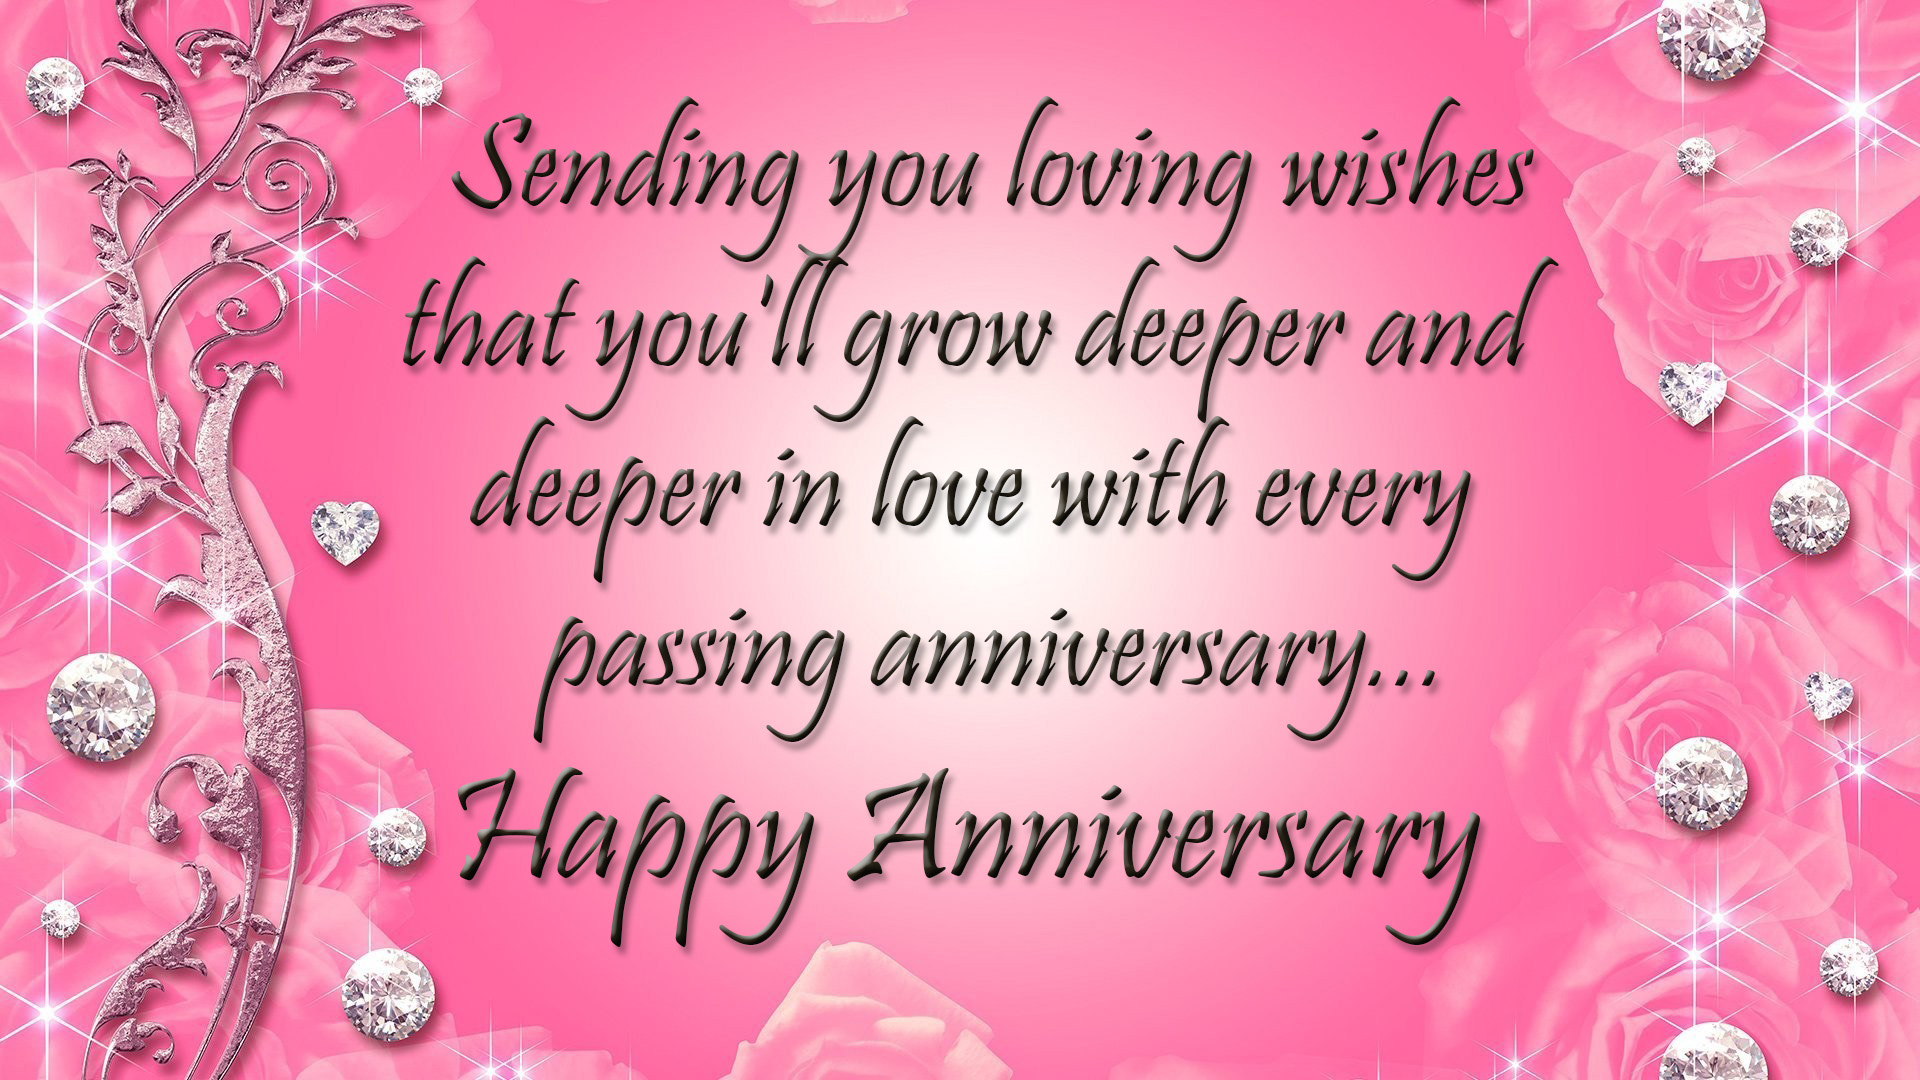 Happy Anniversary Wishes Messages Greetings 2018 Images